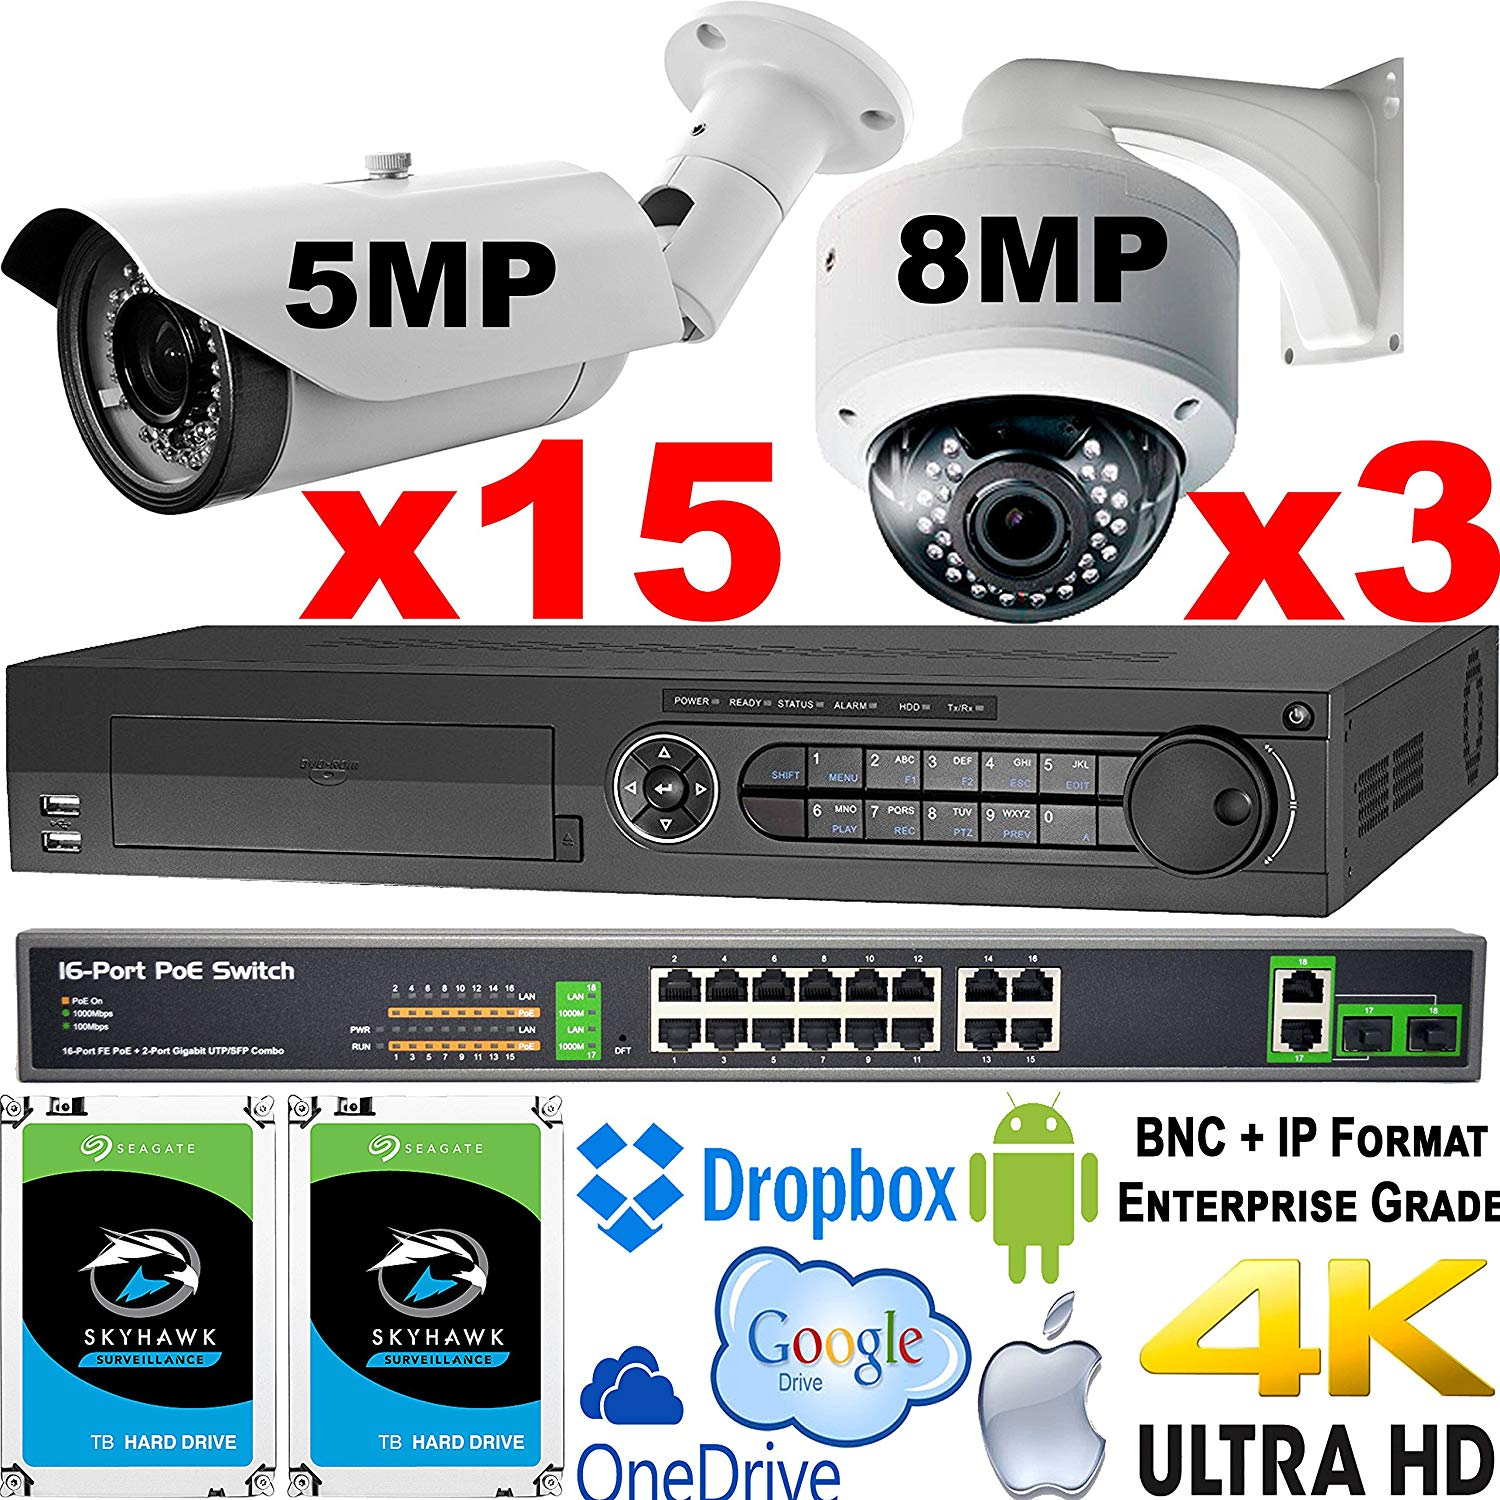 USG 18 Camera Security System : 1x 40 Channel BNC + IP Recorder DVR, 15x 5MP + 3x 8MP Ultra 4K IP Network Manual Vari-Focal Lens Cameras + 2x 6TB HD + 1x 18 Port PoE Network Switch : Business Grade